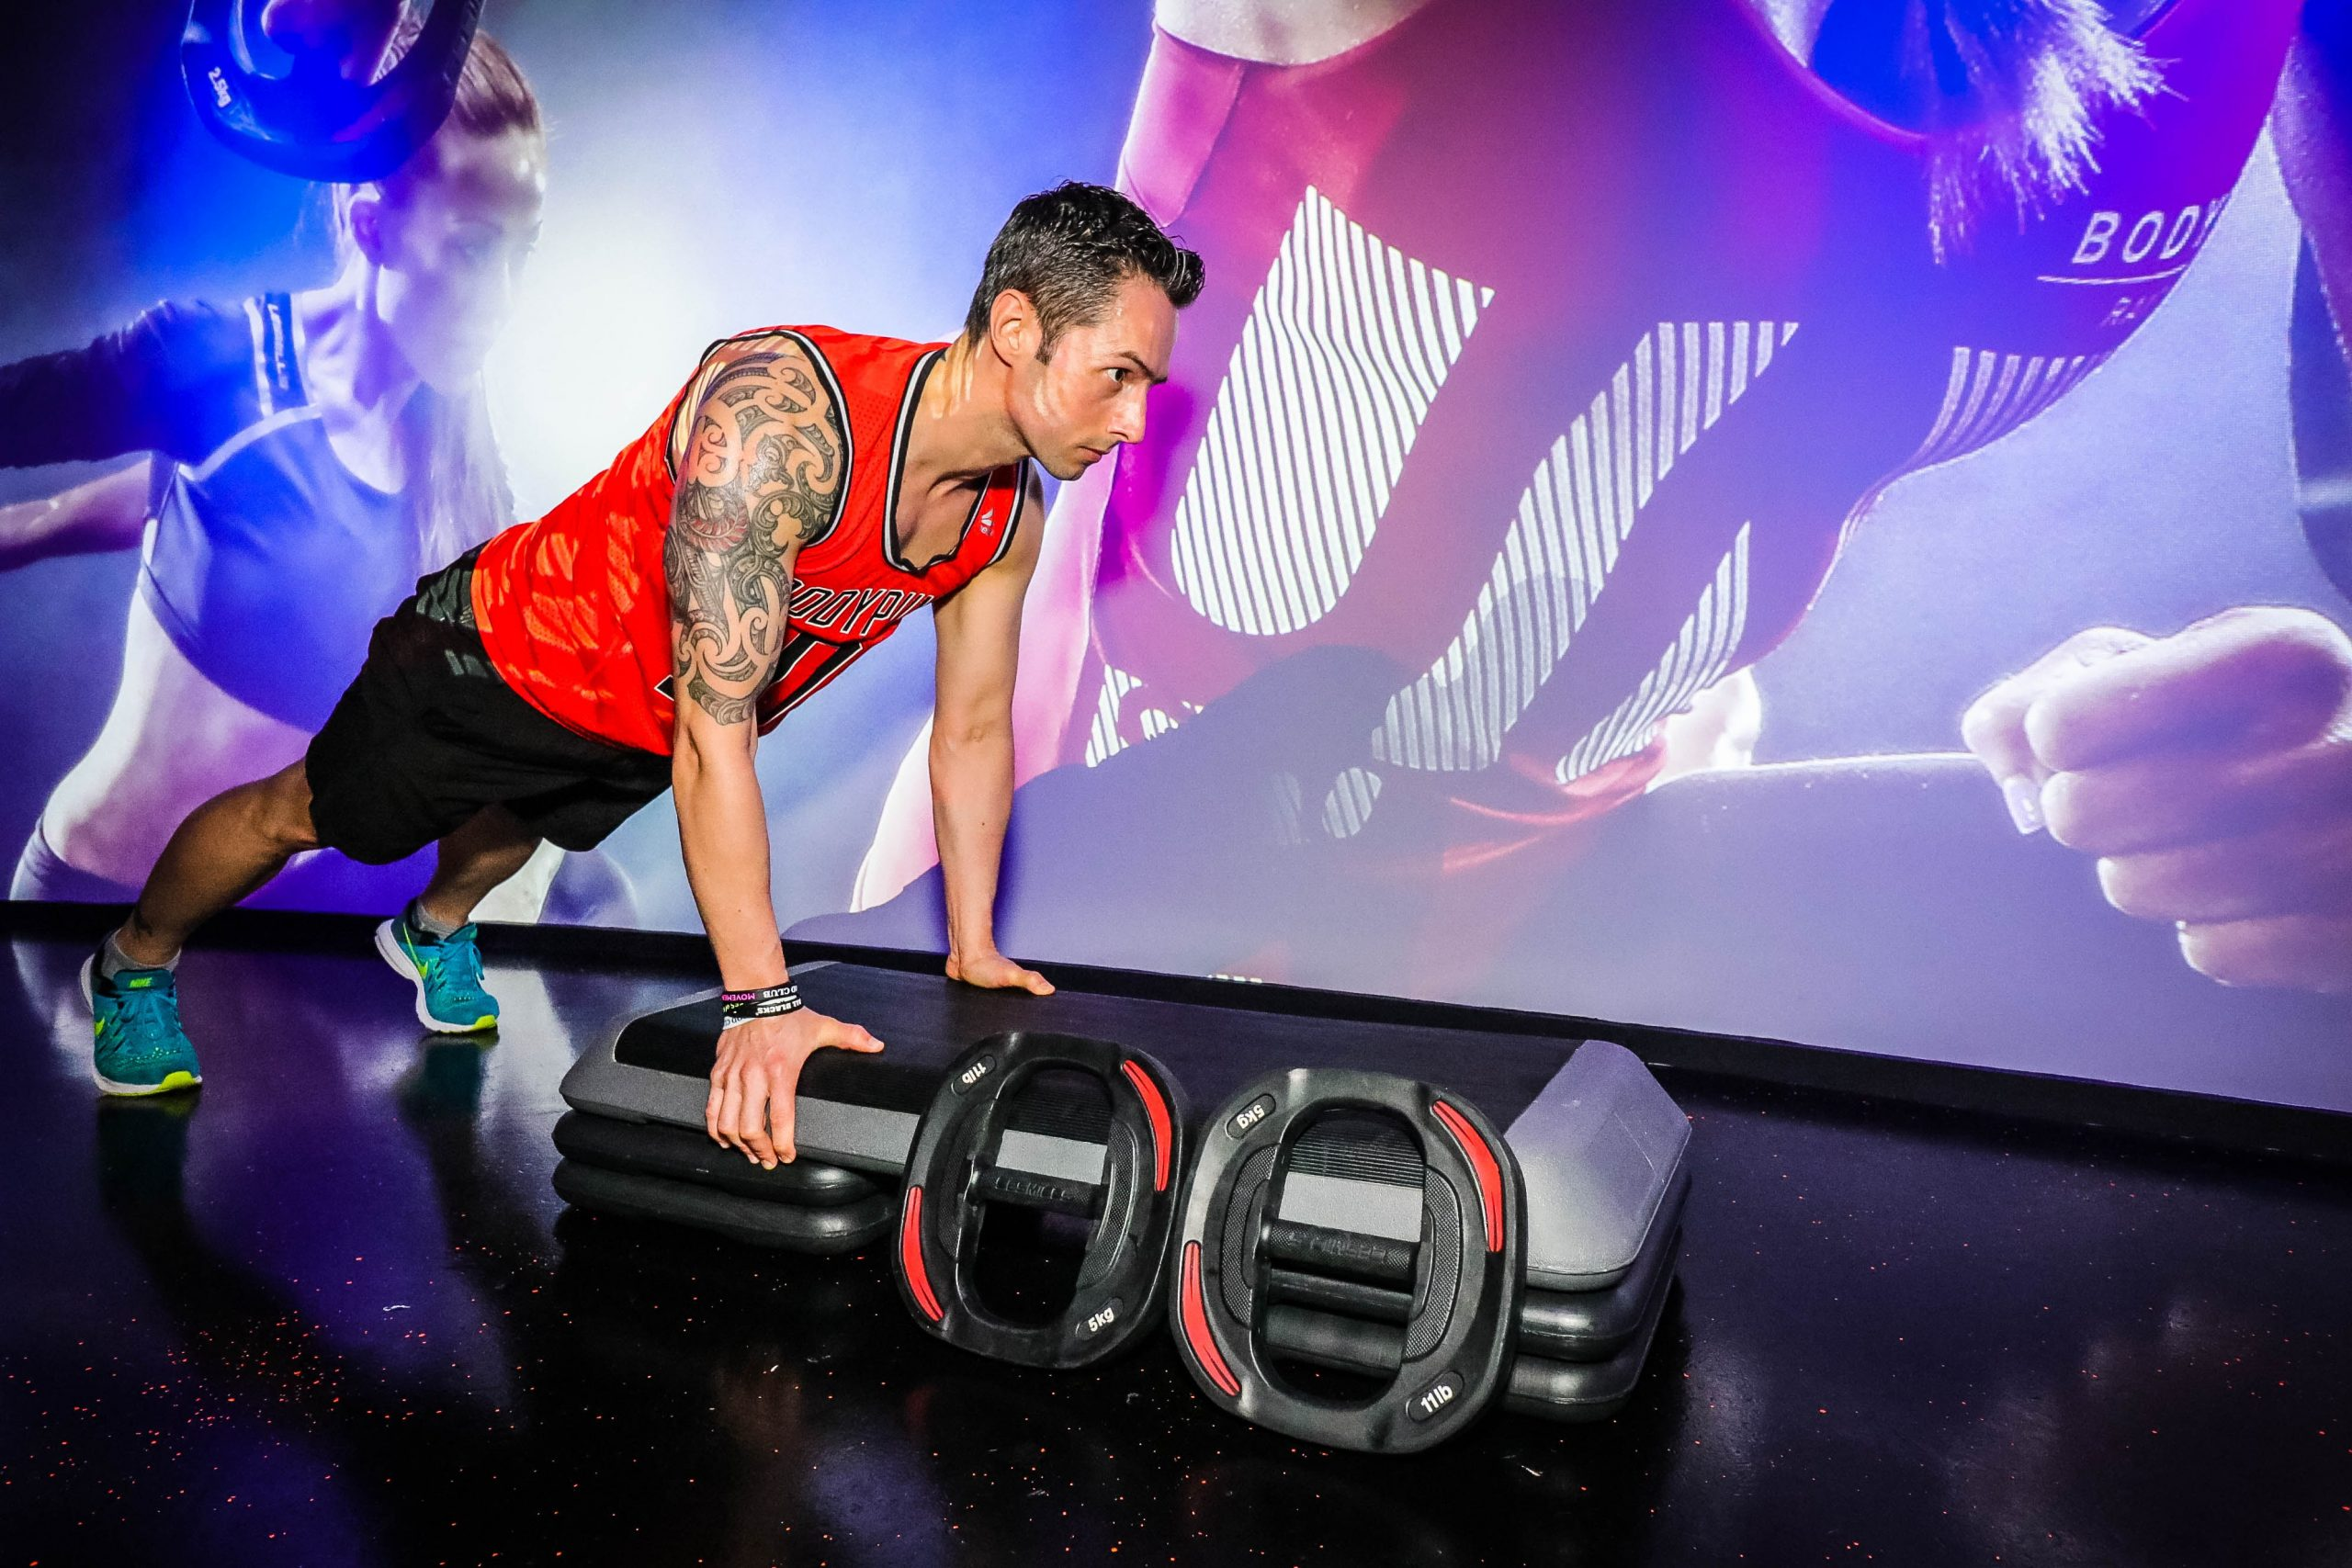 westwood-fitness-photography-gym-dublin-fiona-madden